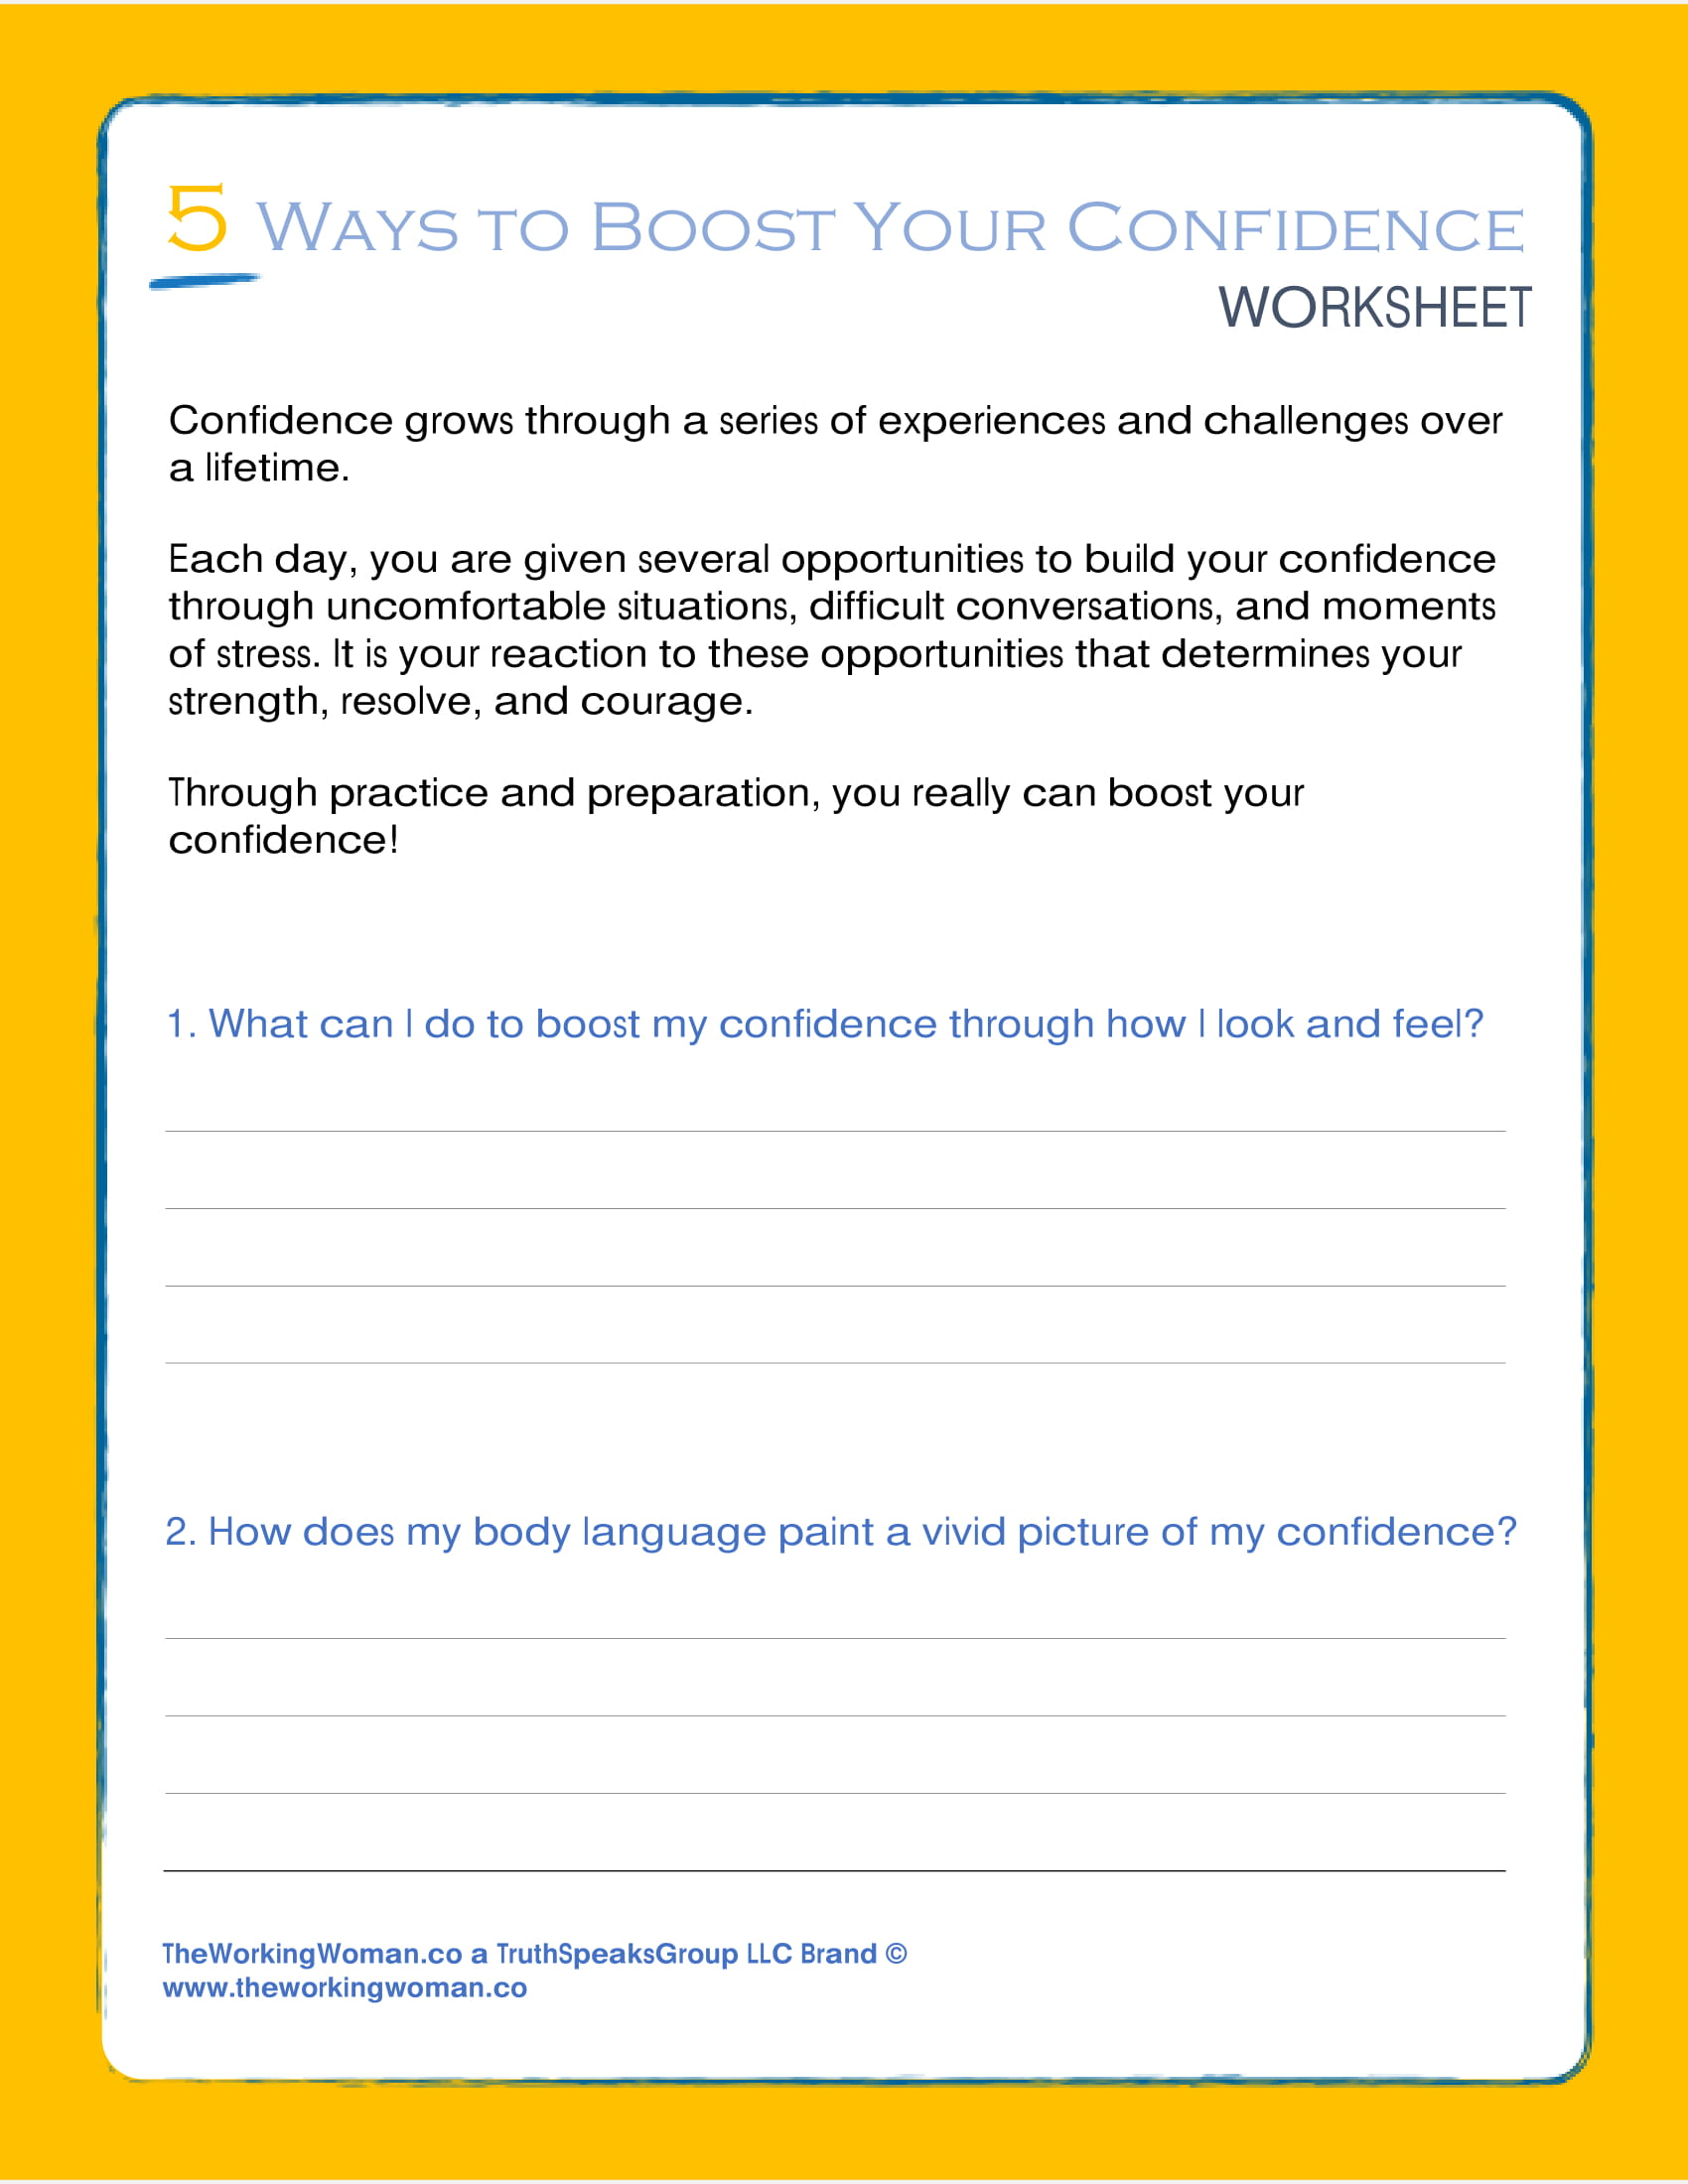 5 Ways To Boost Your Confidence Worksheet